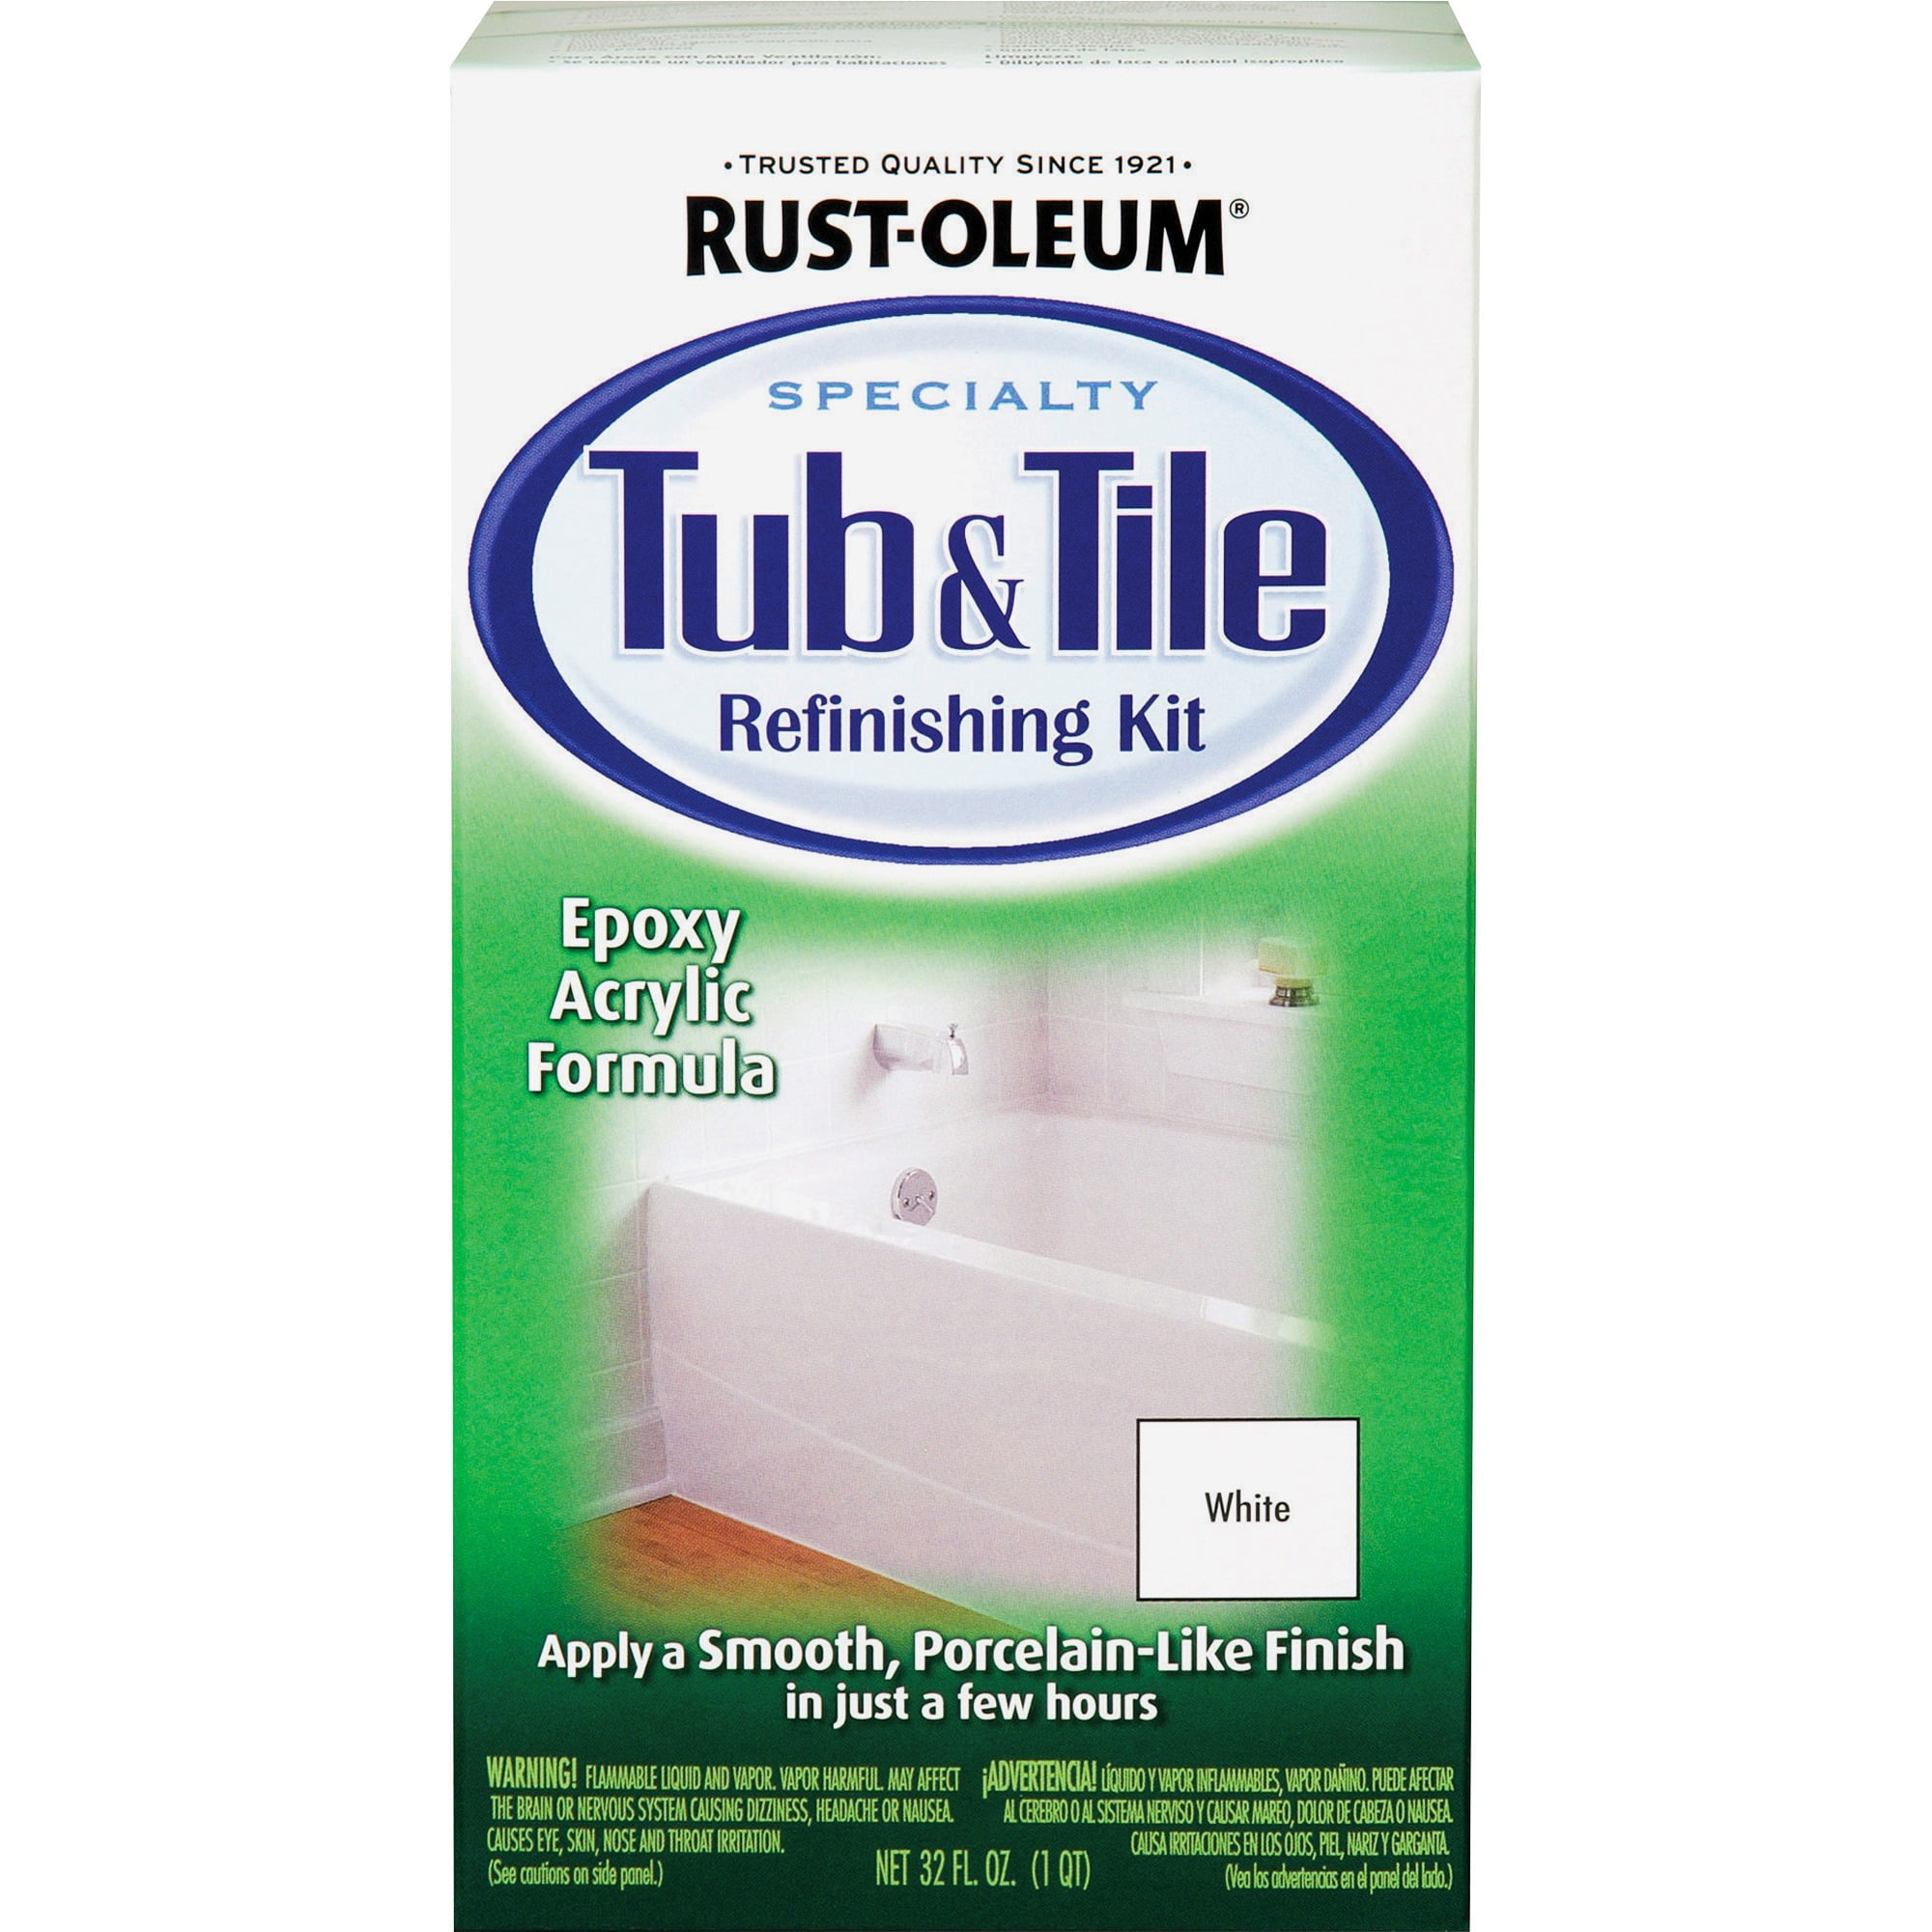 Rust-Oleum Tub & Tile Refreshing Kit - Walmart.com